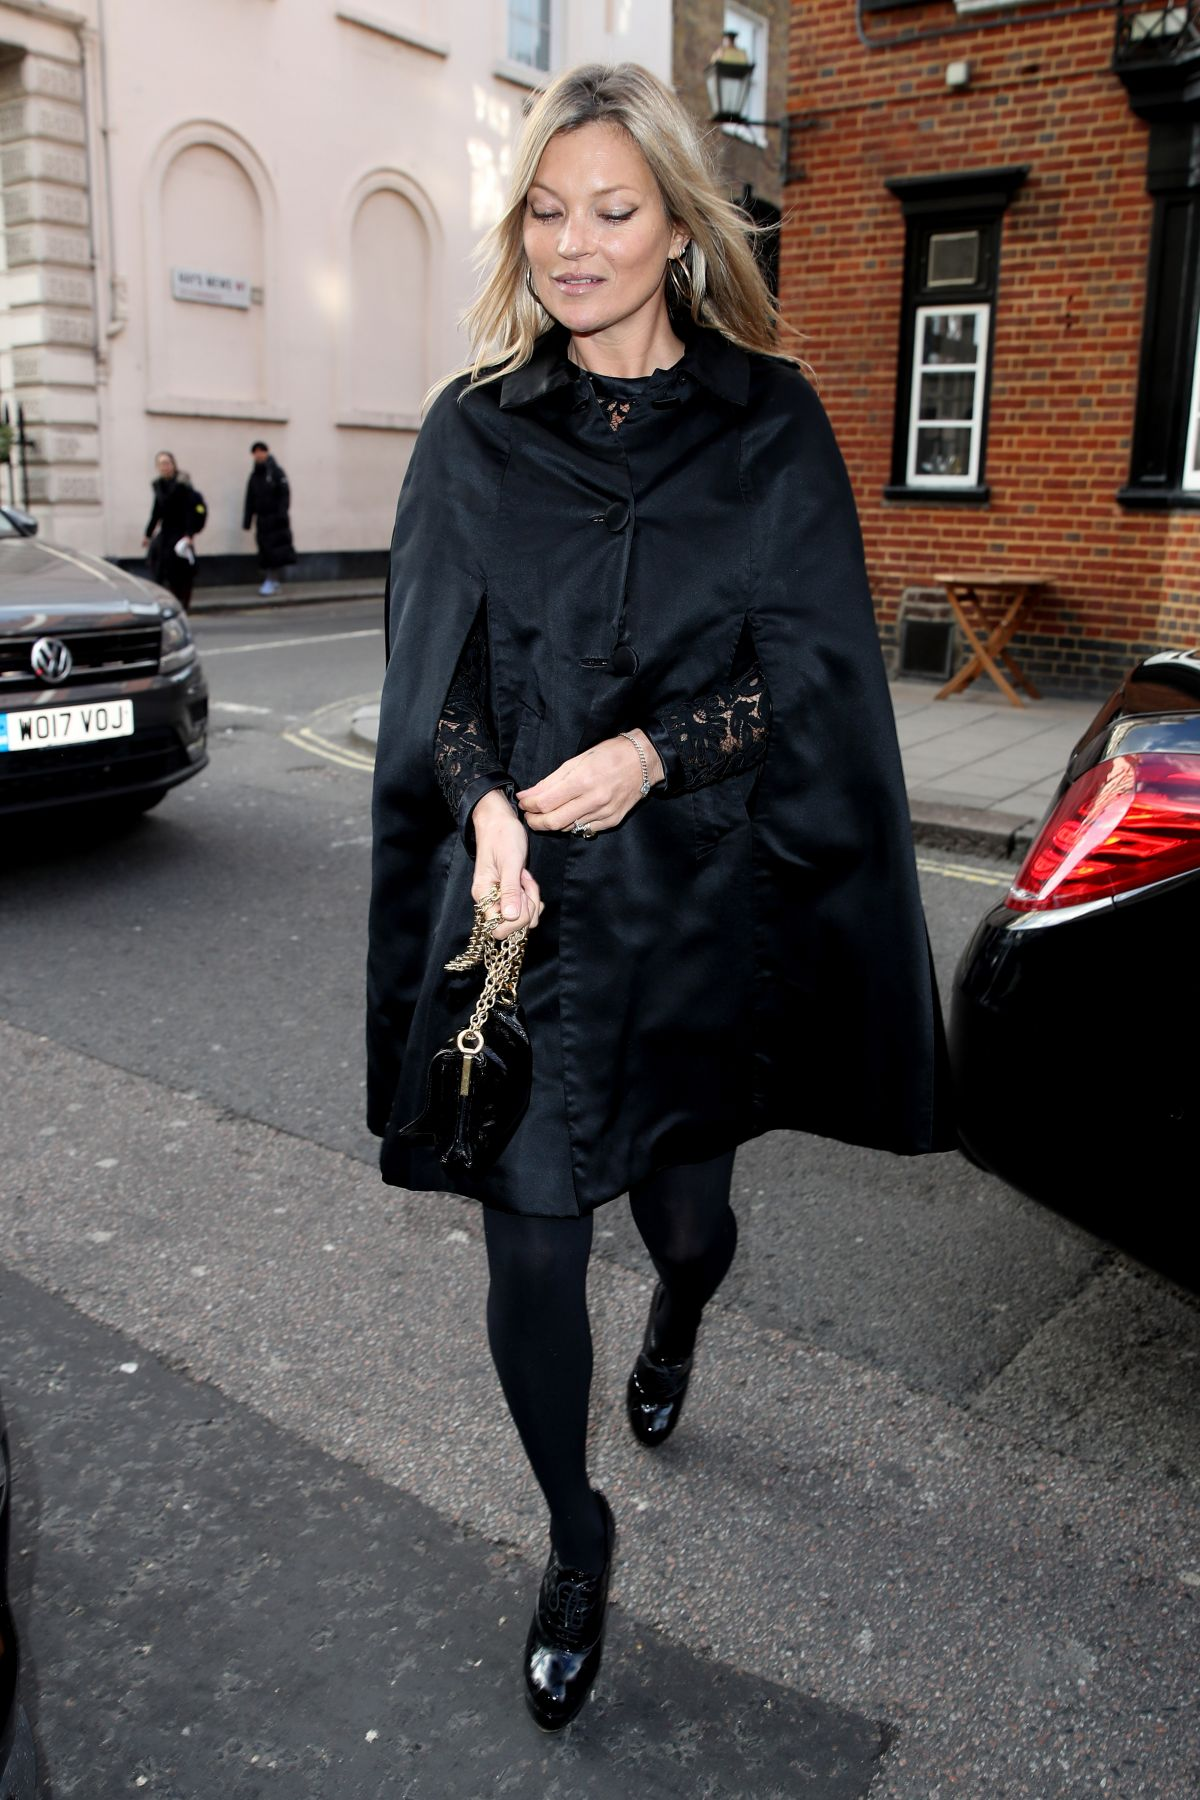 Kate Moss - posting requires reading thread rules, see post #1 31